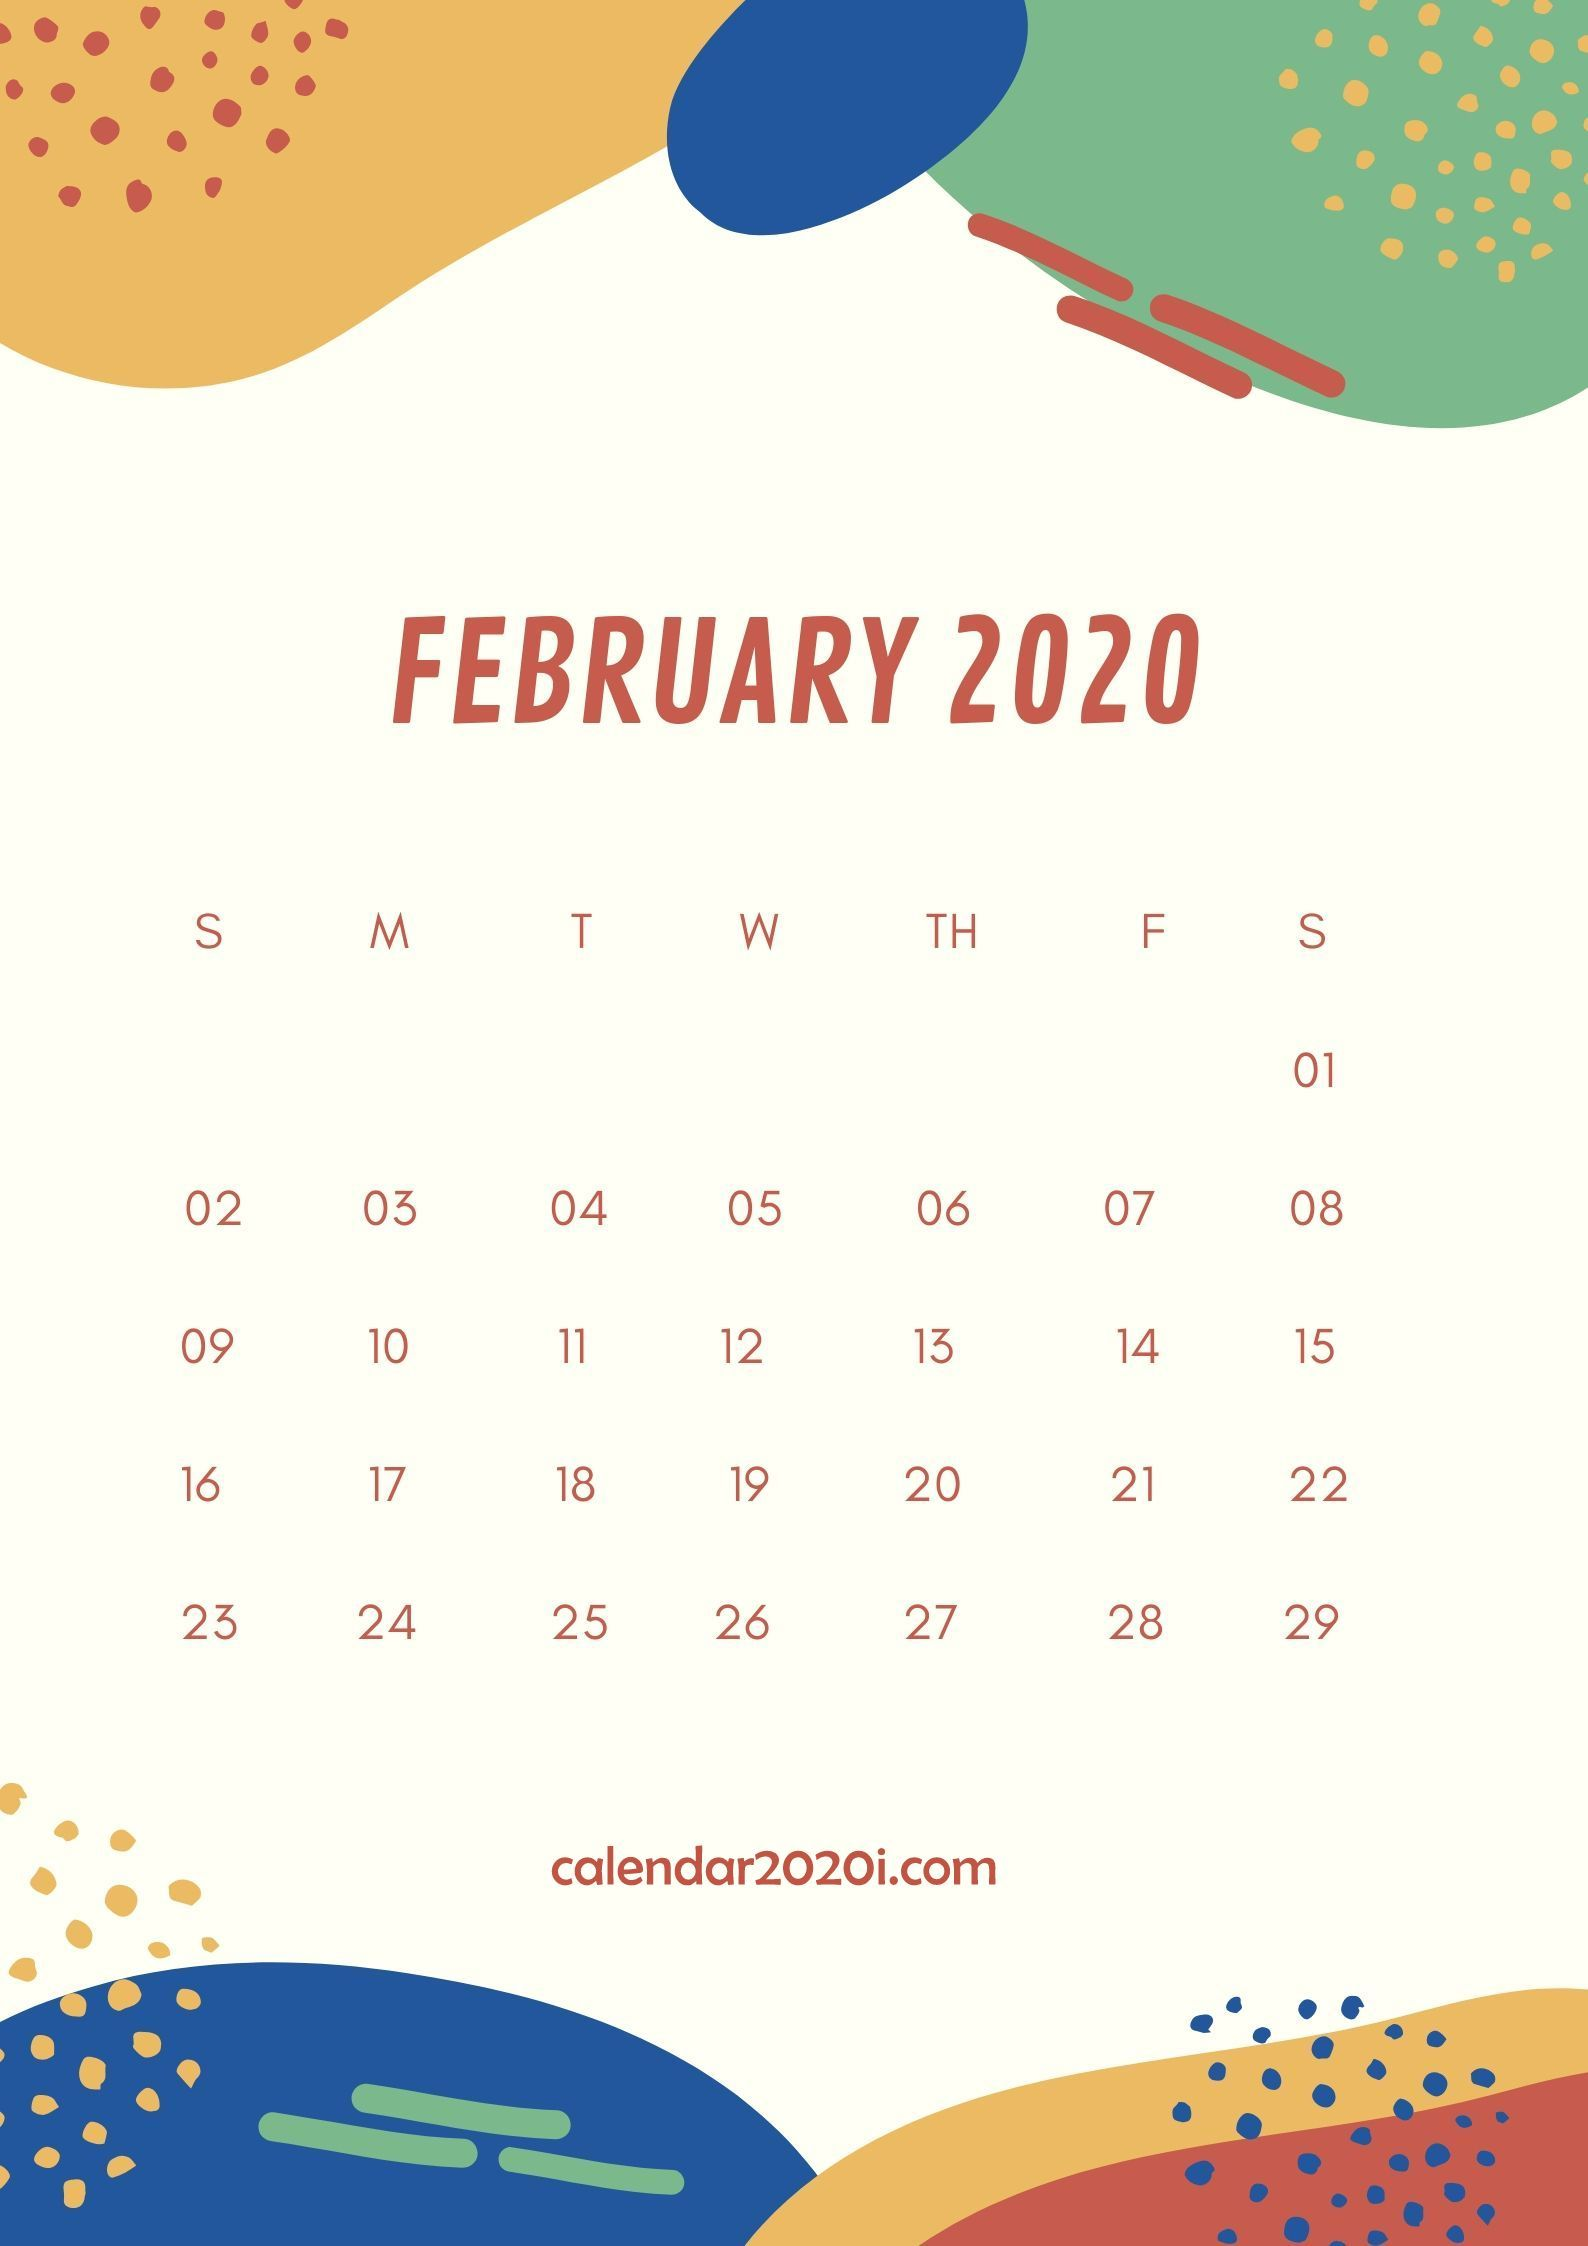 February 2020 Wall Calendar Printable Calendar wallpaper 1588x2246